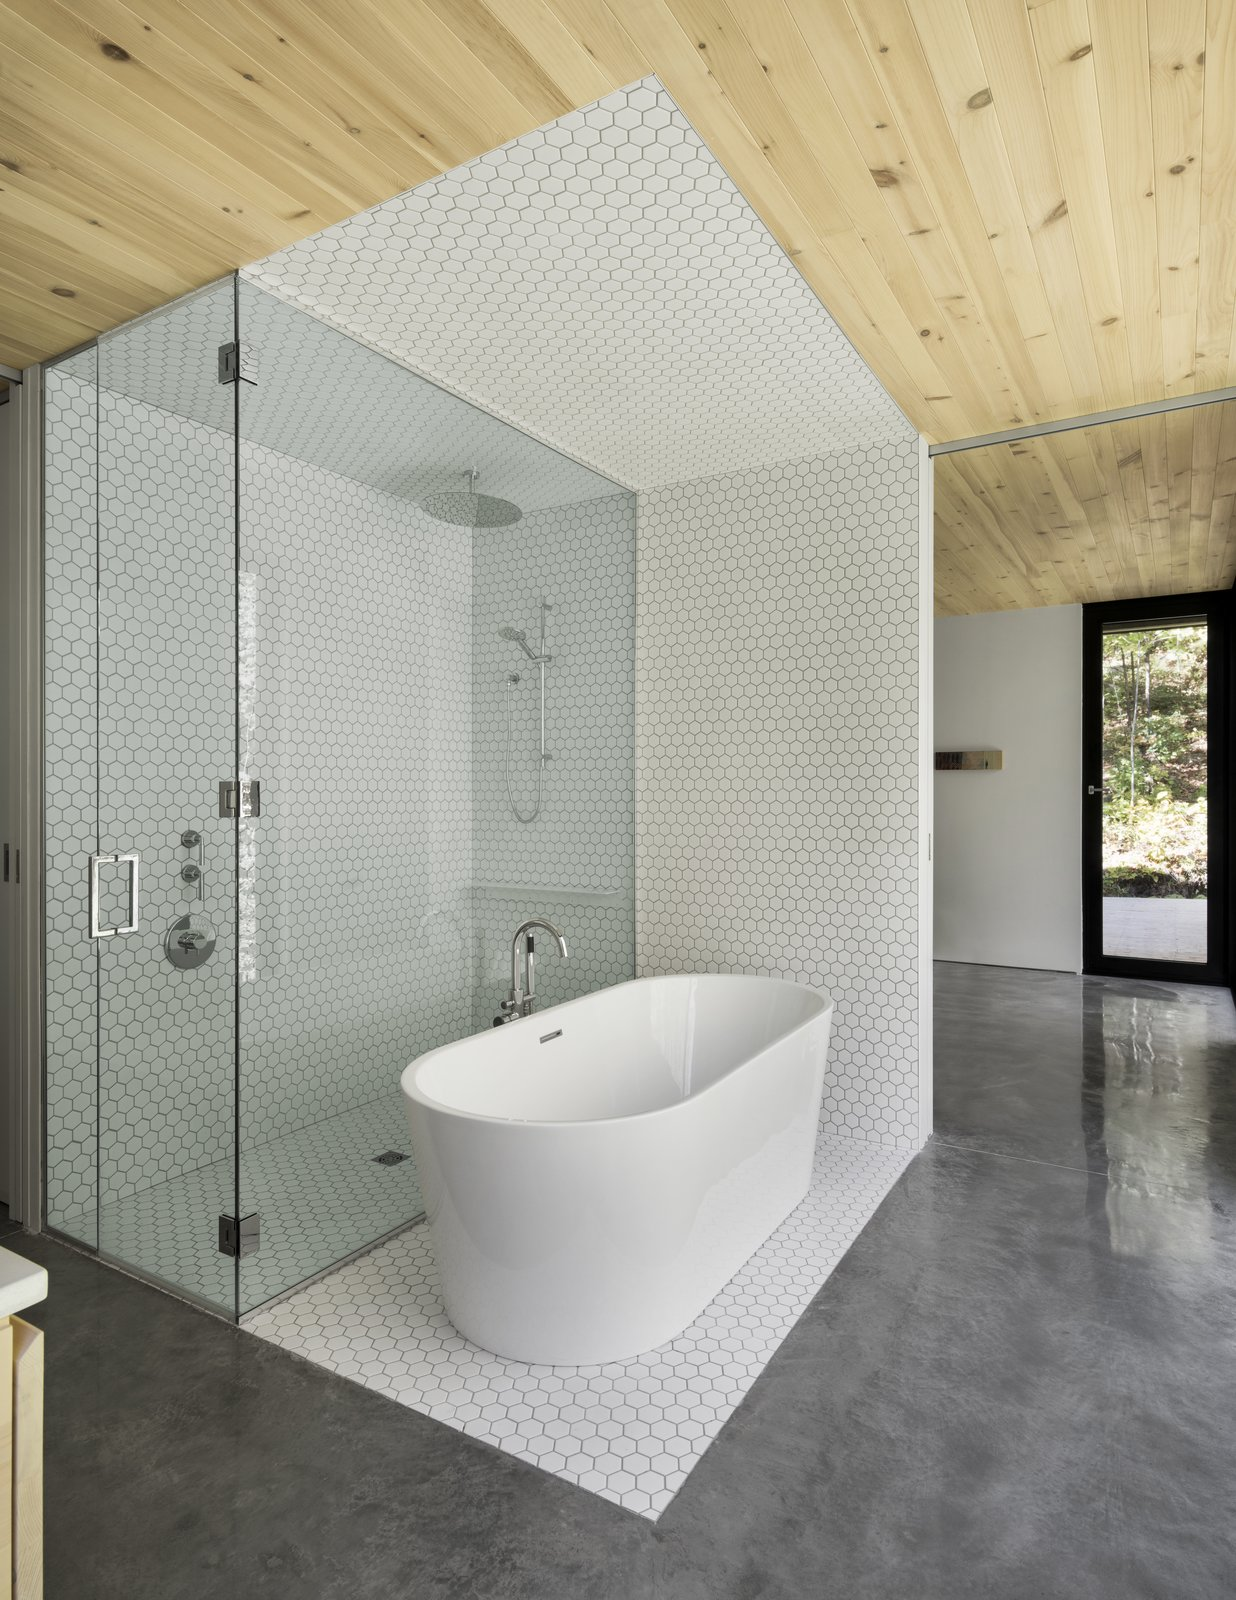 Photo 12 of 17 in This Wood-Clad Home Is Built Into a Serene ...